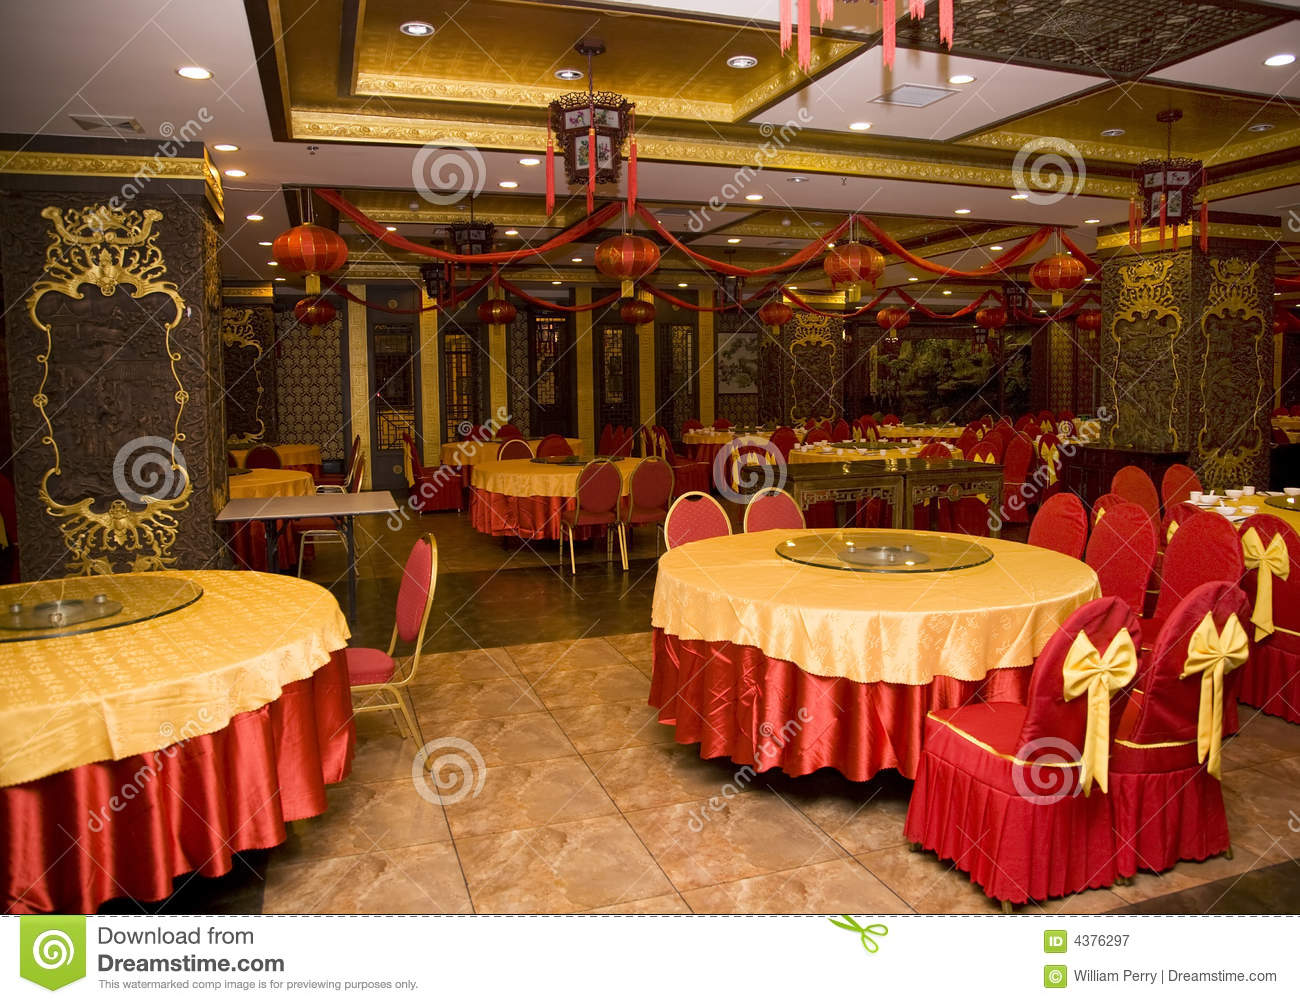 Lunar New Year Decorations Chinese Restaurant Stock Image ...